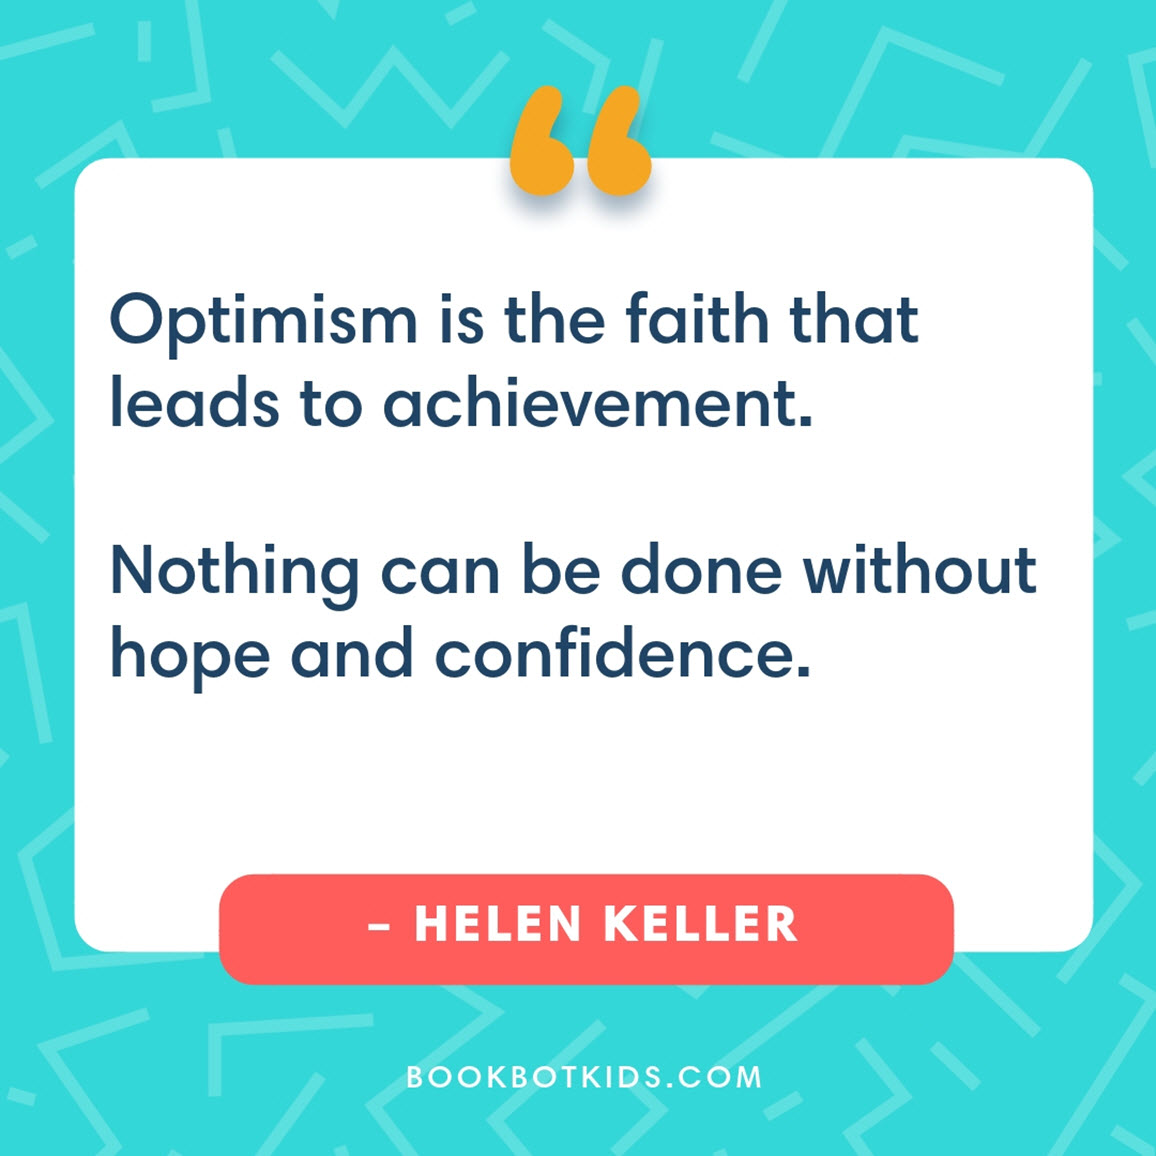 Optimism is the faith that leads to achievement. Nothing can be done without hope and confidence. – Helen Keller